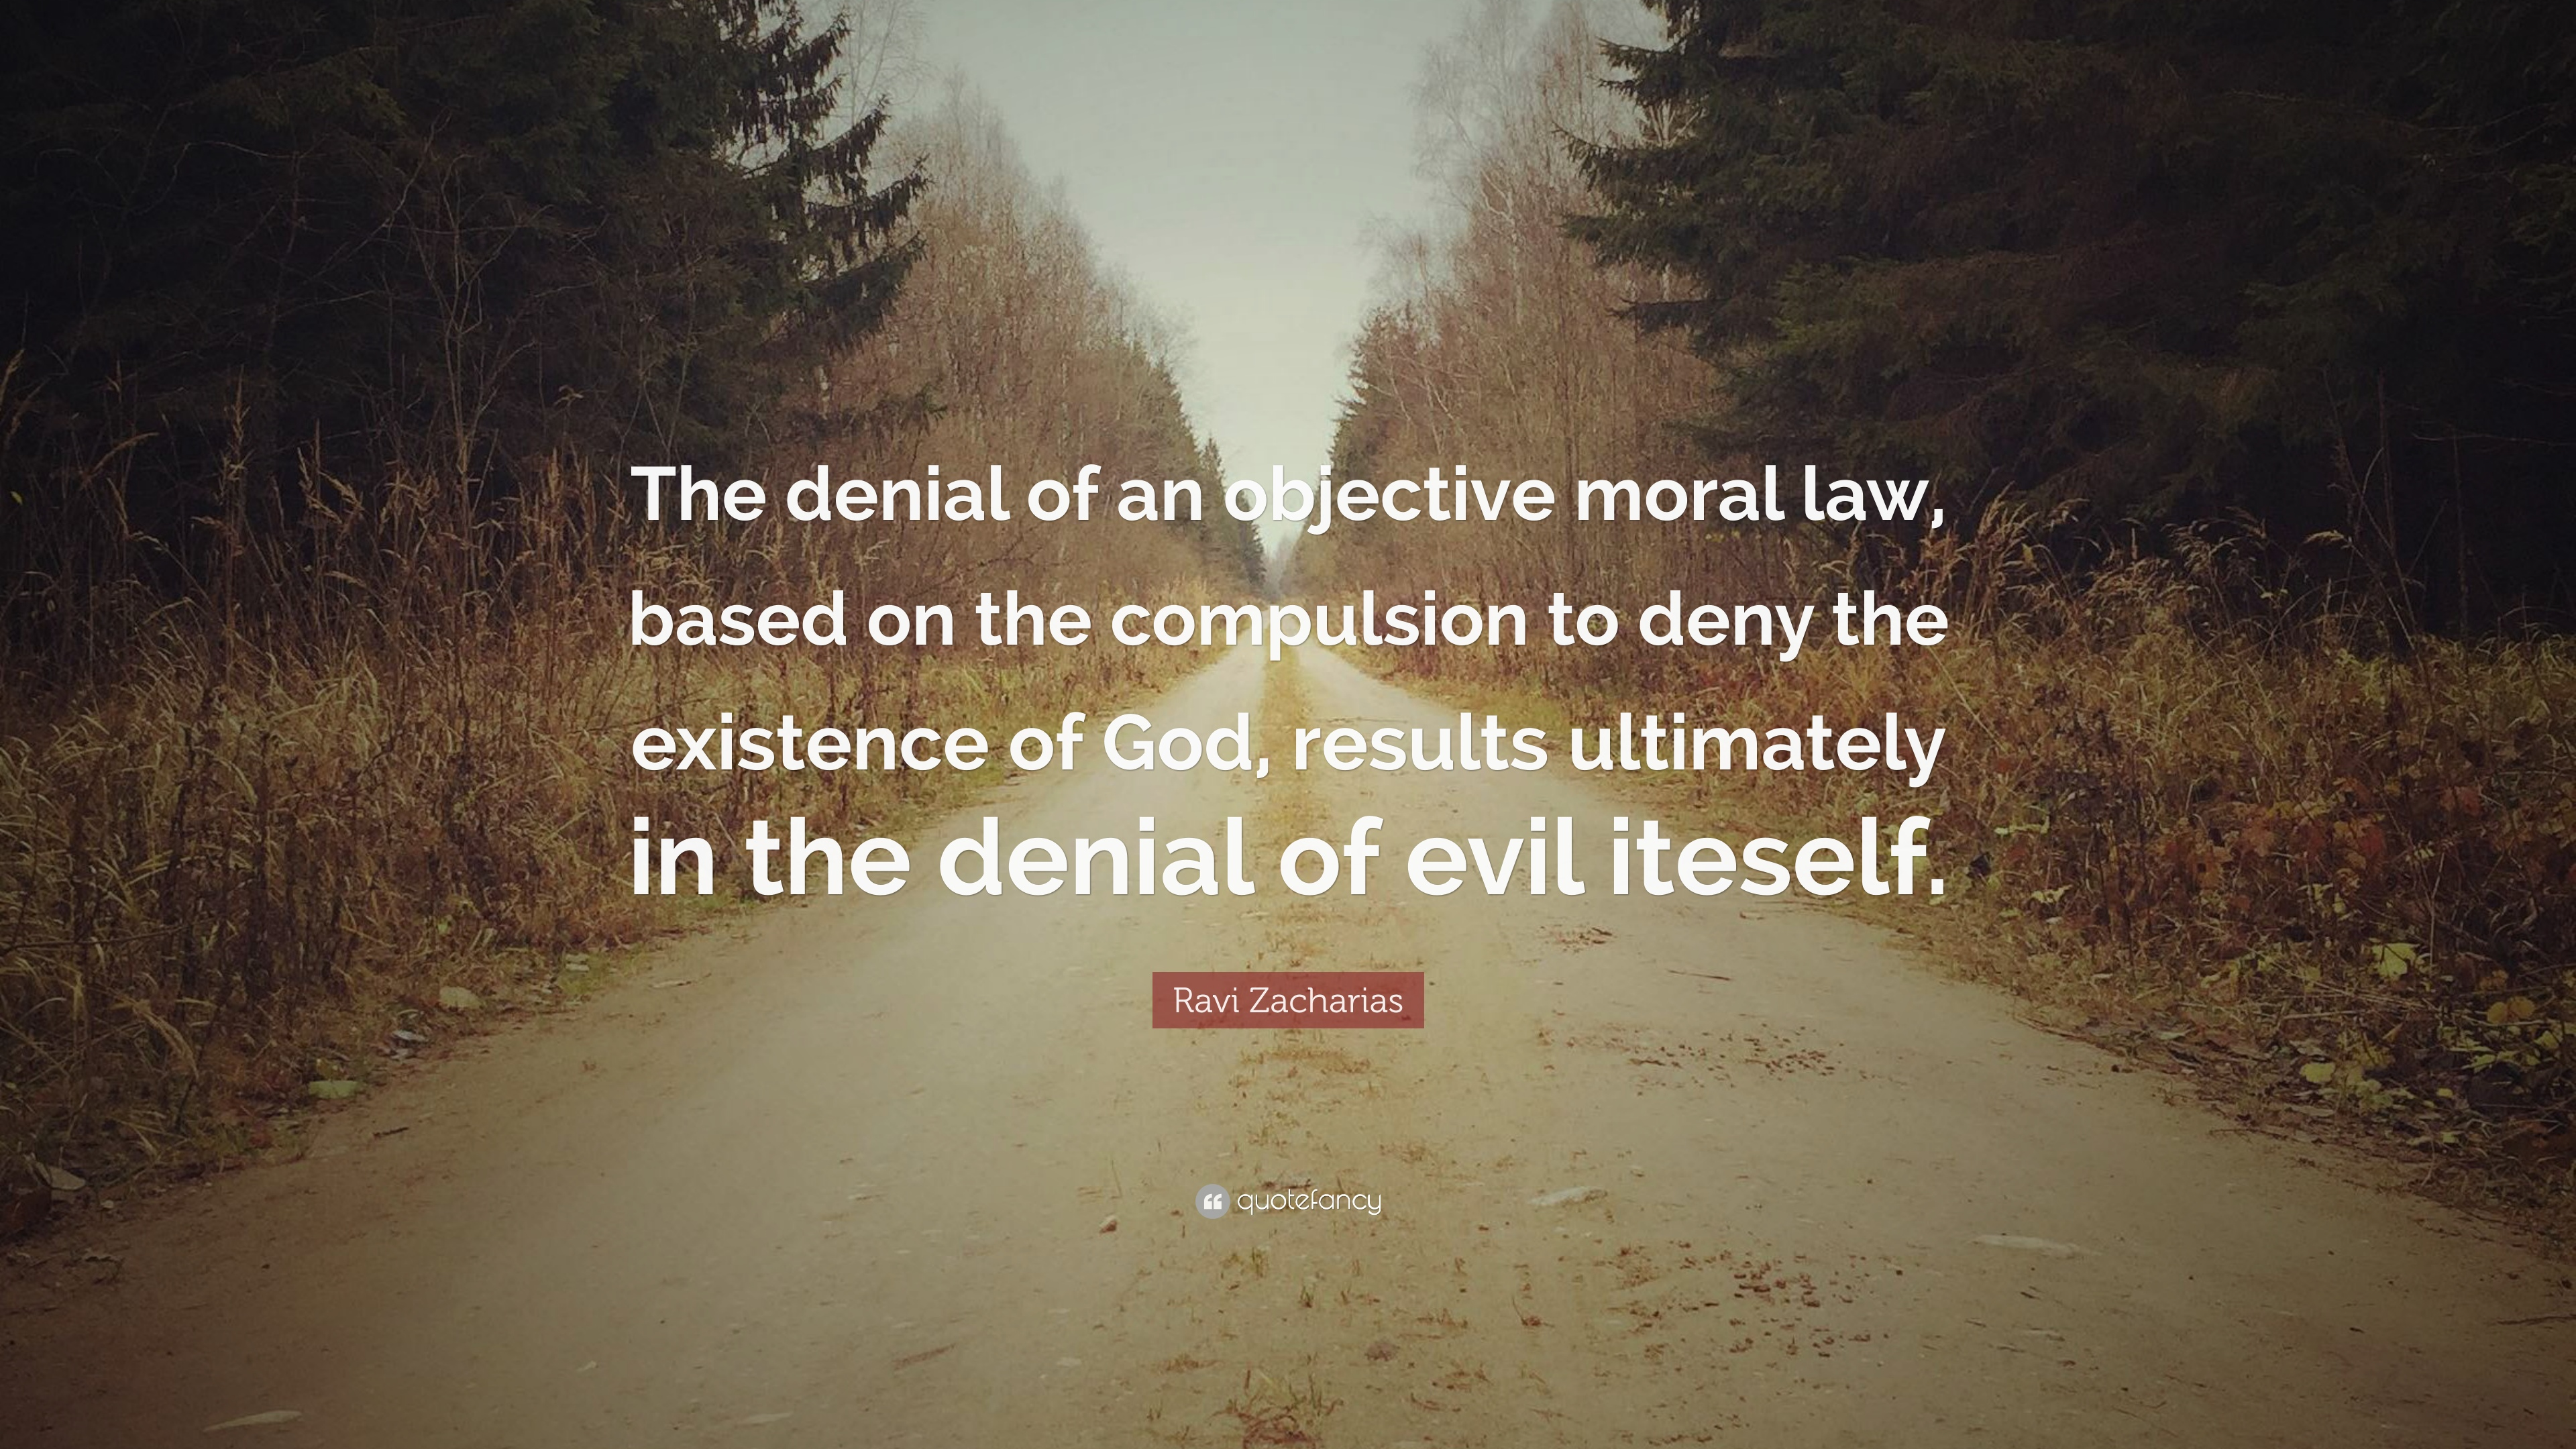 Malcolm X Wallpaper Quotes Ravi Zacharias Quote The Denial Of An Objective Moral